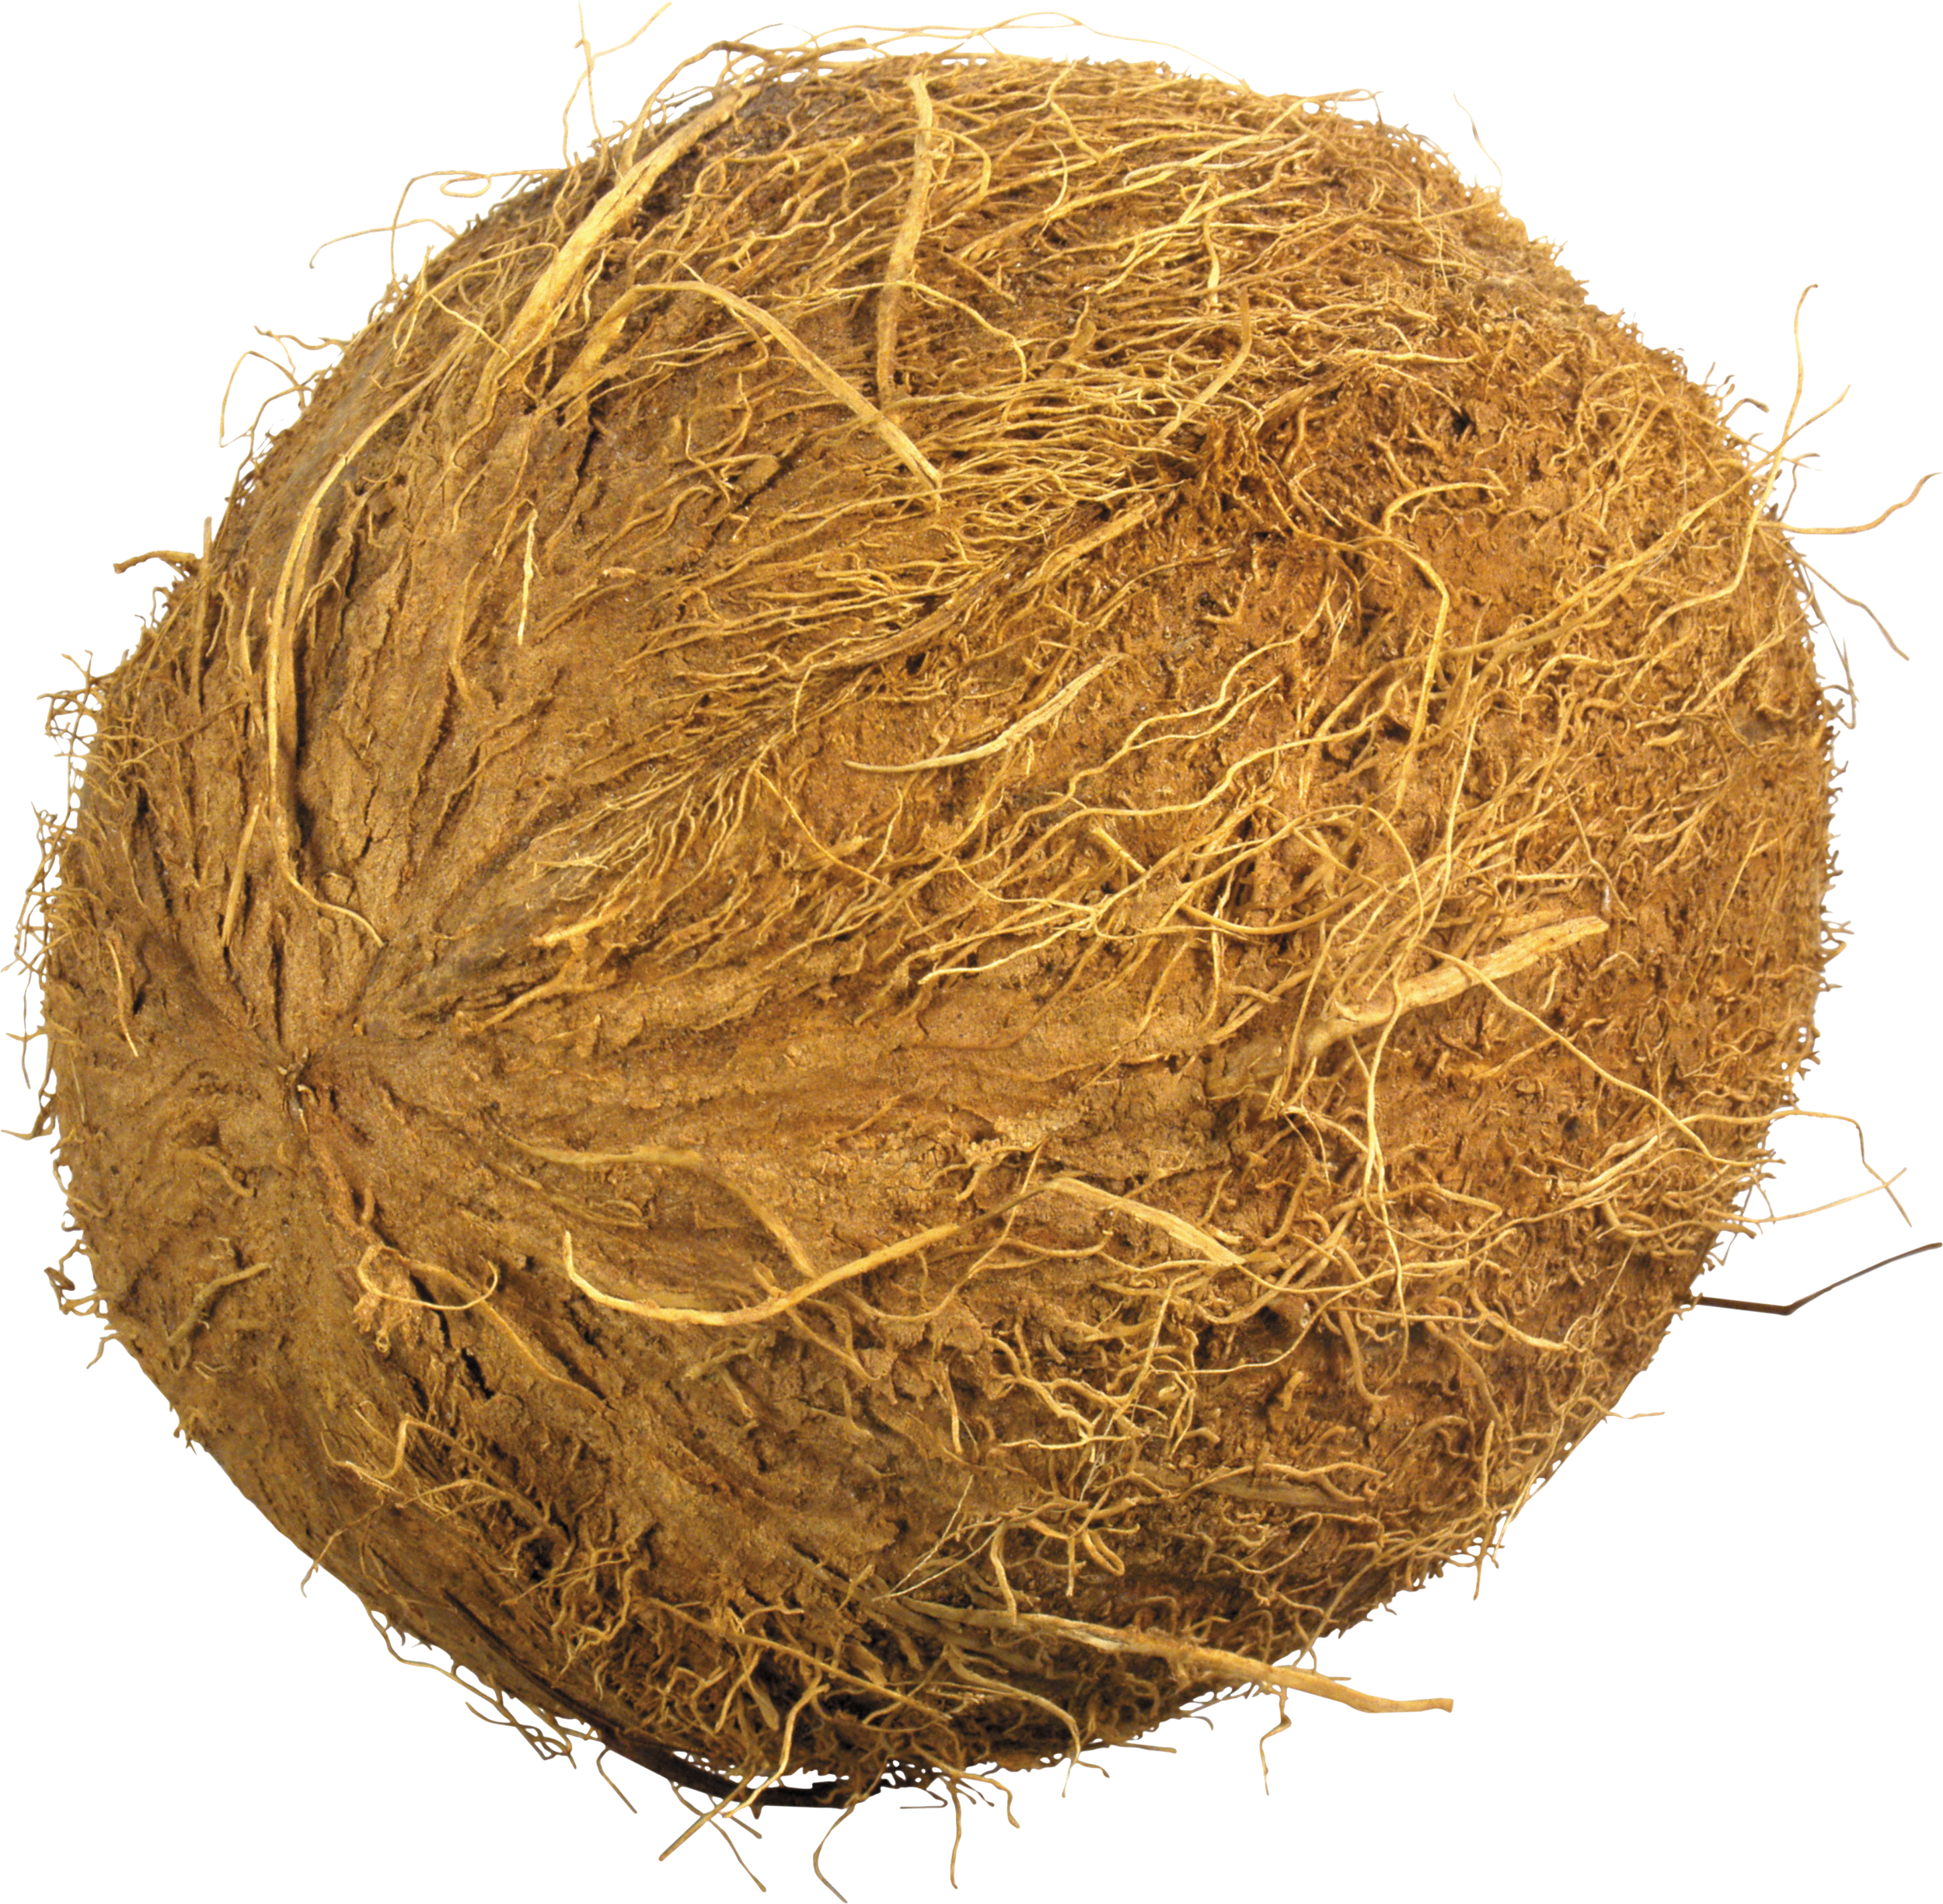 Png image without web. Coconut clipart clear background